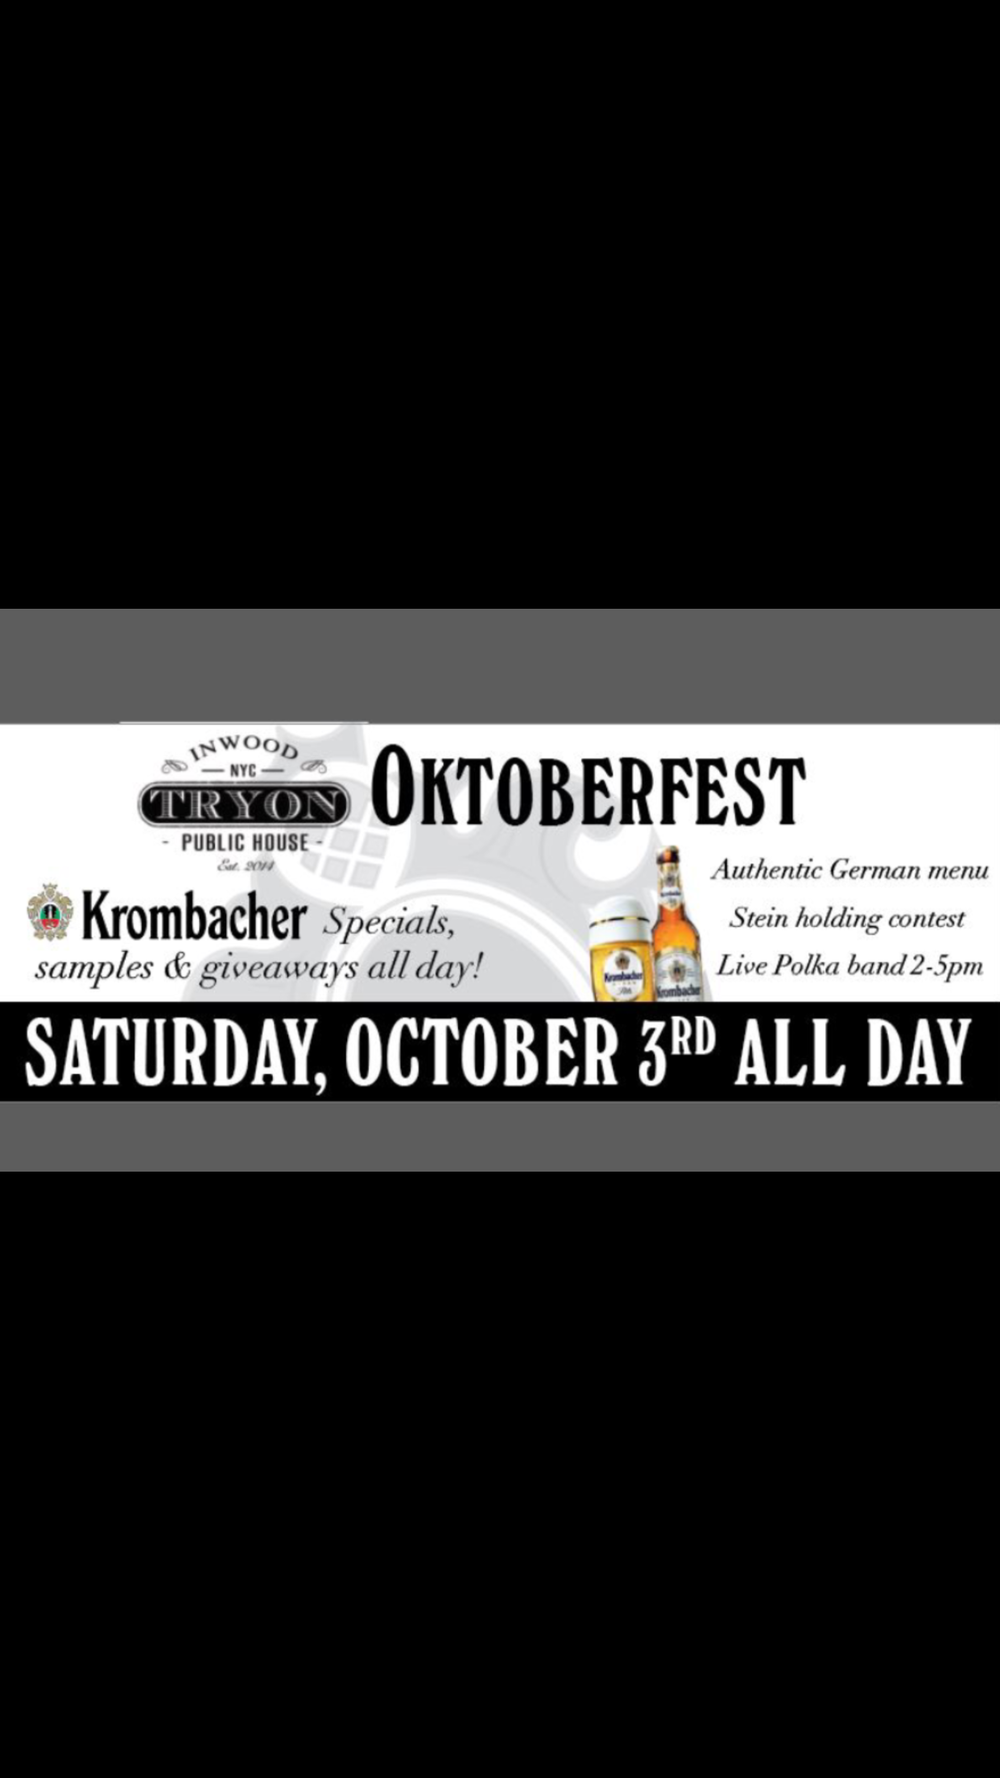 JOIN US SATURDAY, OCTOBER 3RD FOR OUR TRYON PUBLIC HOUSE OKTOBERFEST ALL CELEBRATION! WE WILL OFFER AN AUTHENTIC GERMAN MENU, HAVE STEIN HOLDING COMPETITIONS, POLKA BAND, AND SAMPLES, SURPRISES AND GIVEAWAYS!